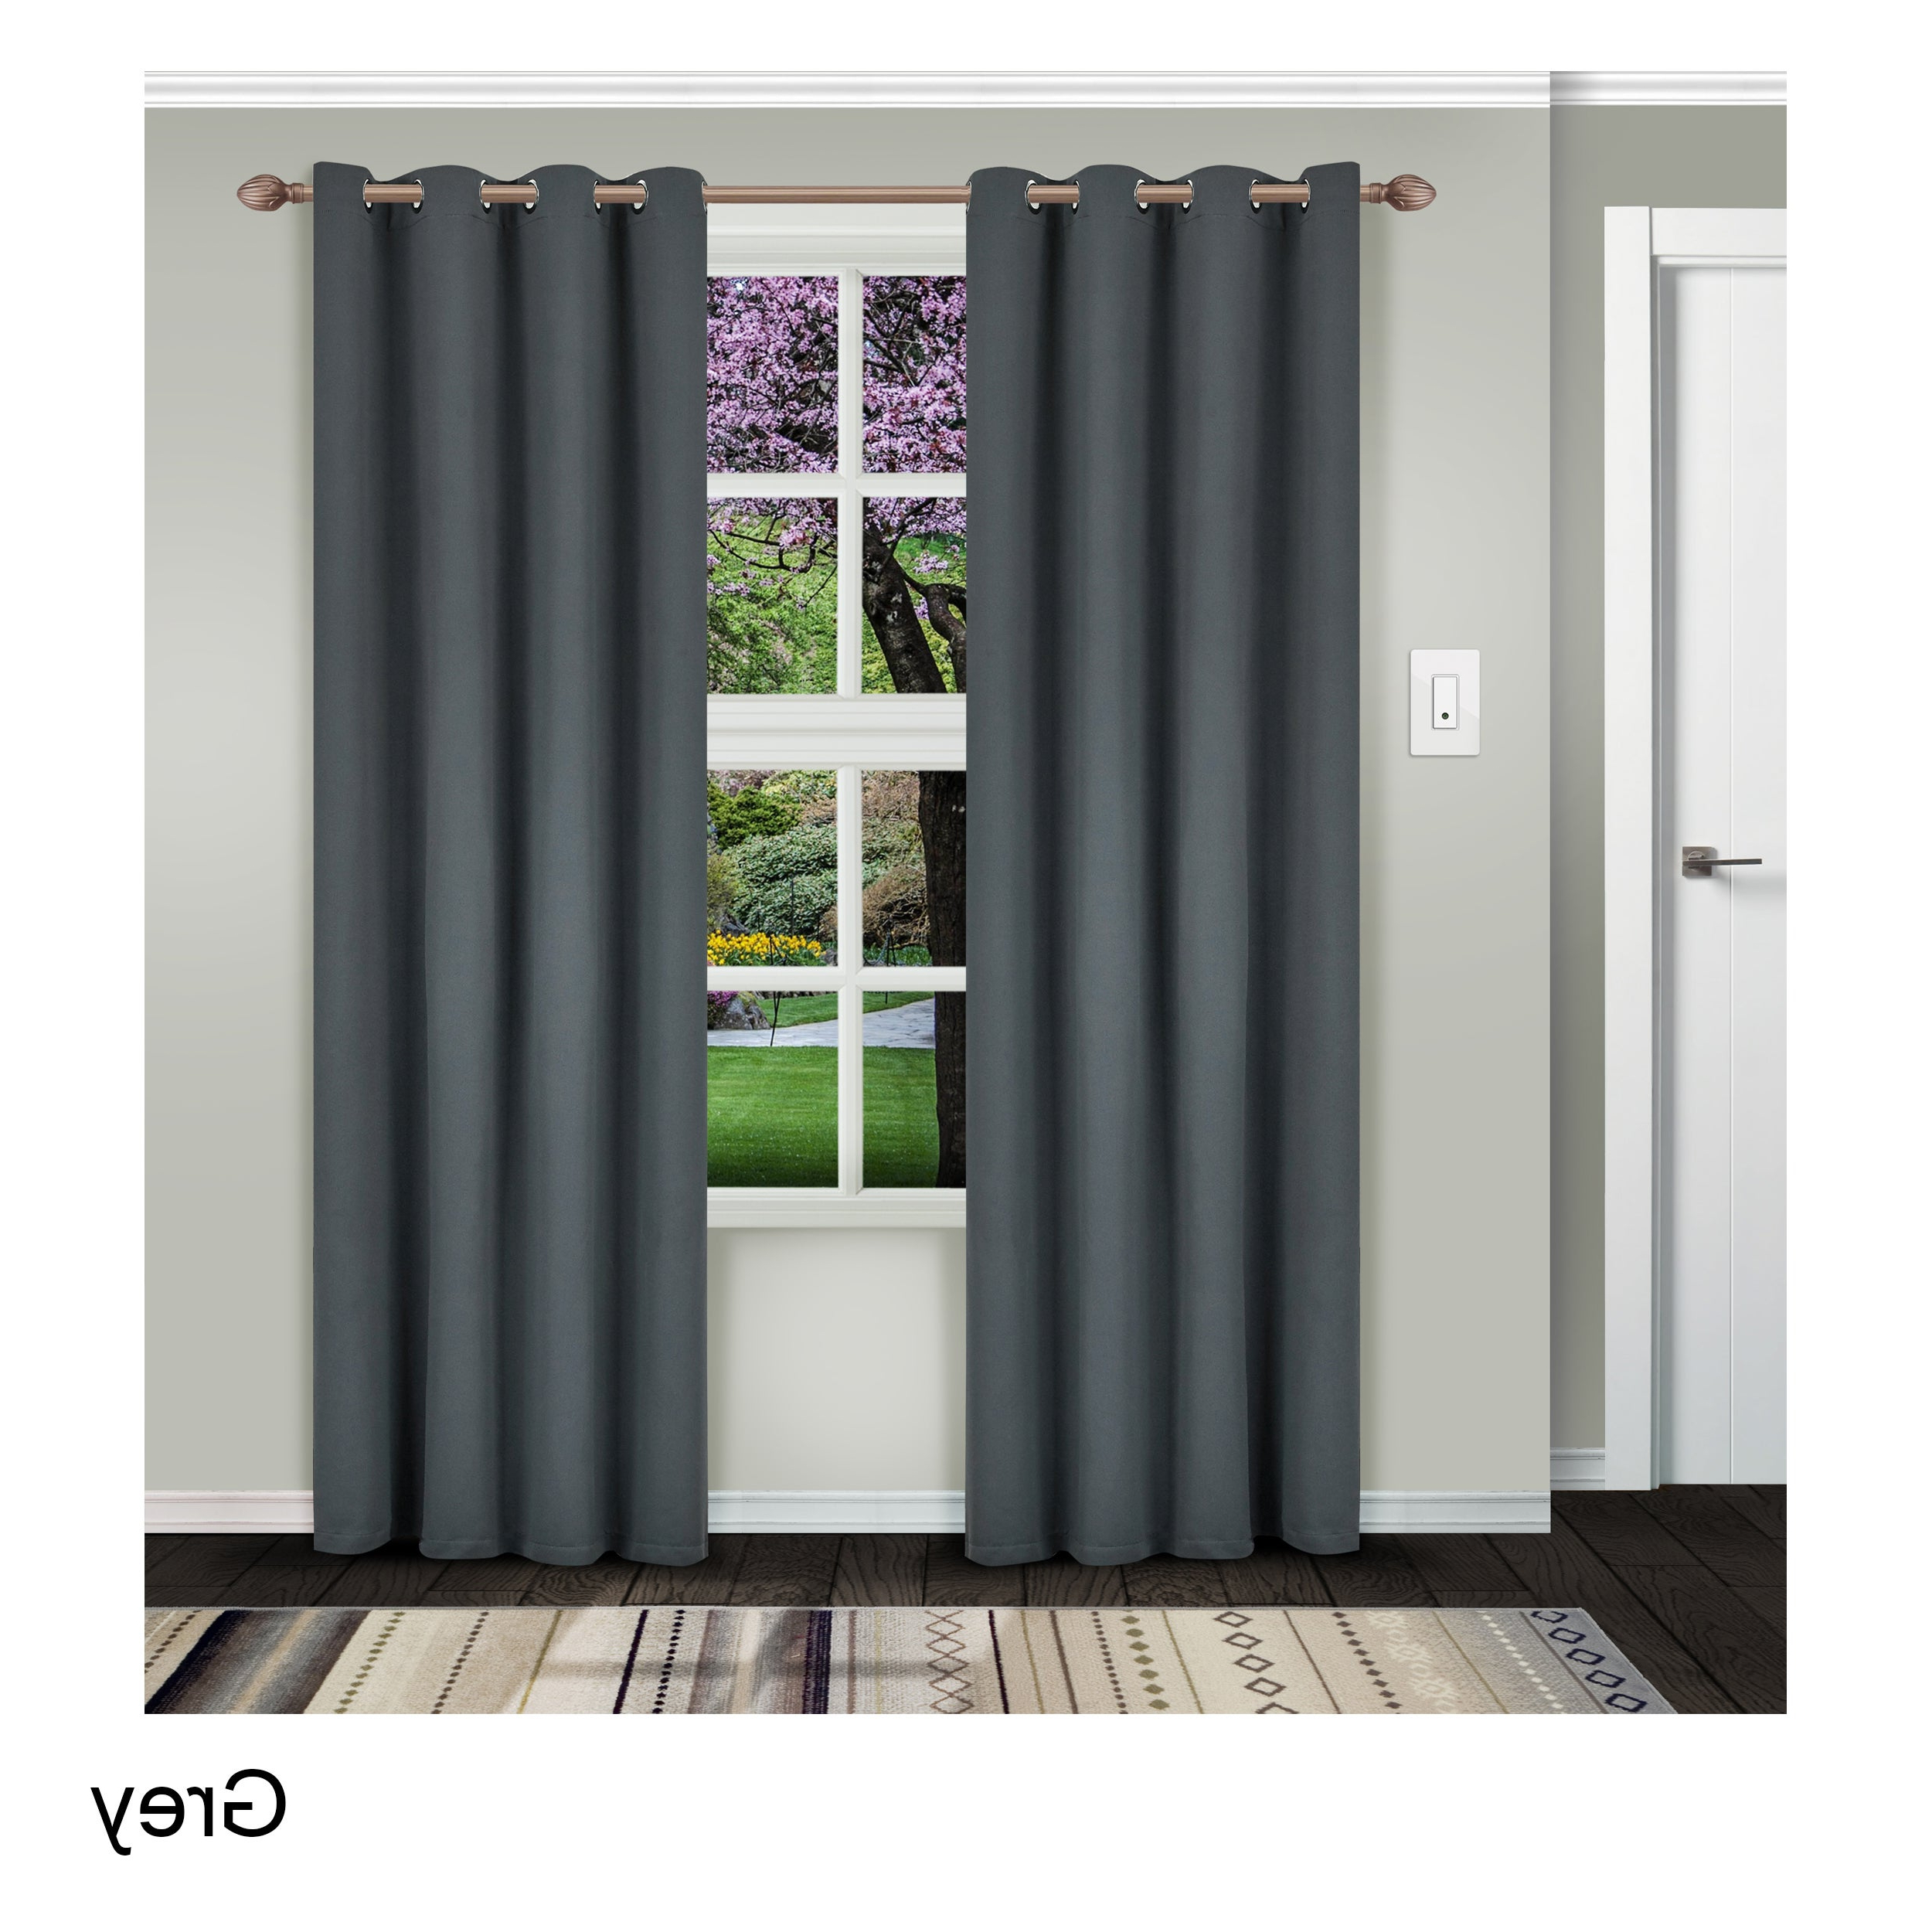 Solid Insulated Thermal Blackout Curtain Panel Pairs Within Most Recently Released Superior Solid Insulated Thermal Blackout Grommet Curtain Panel Pair (View 3 of 20)